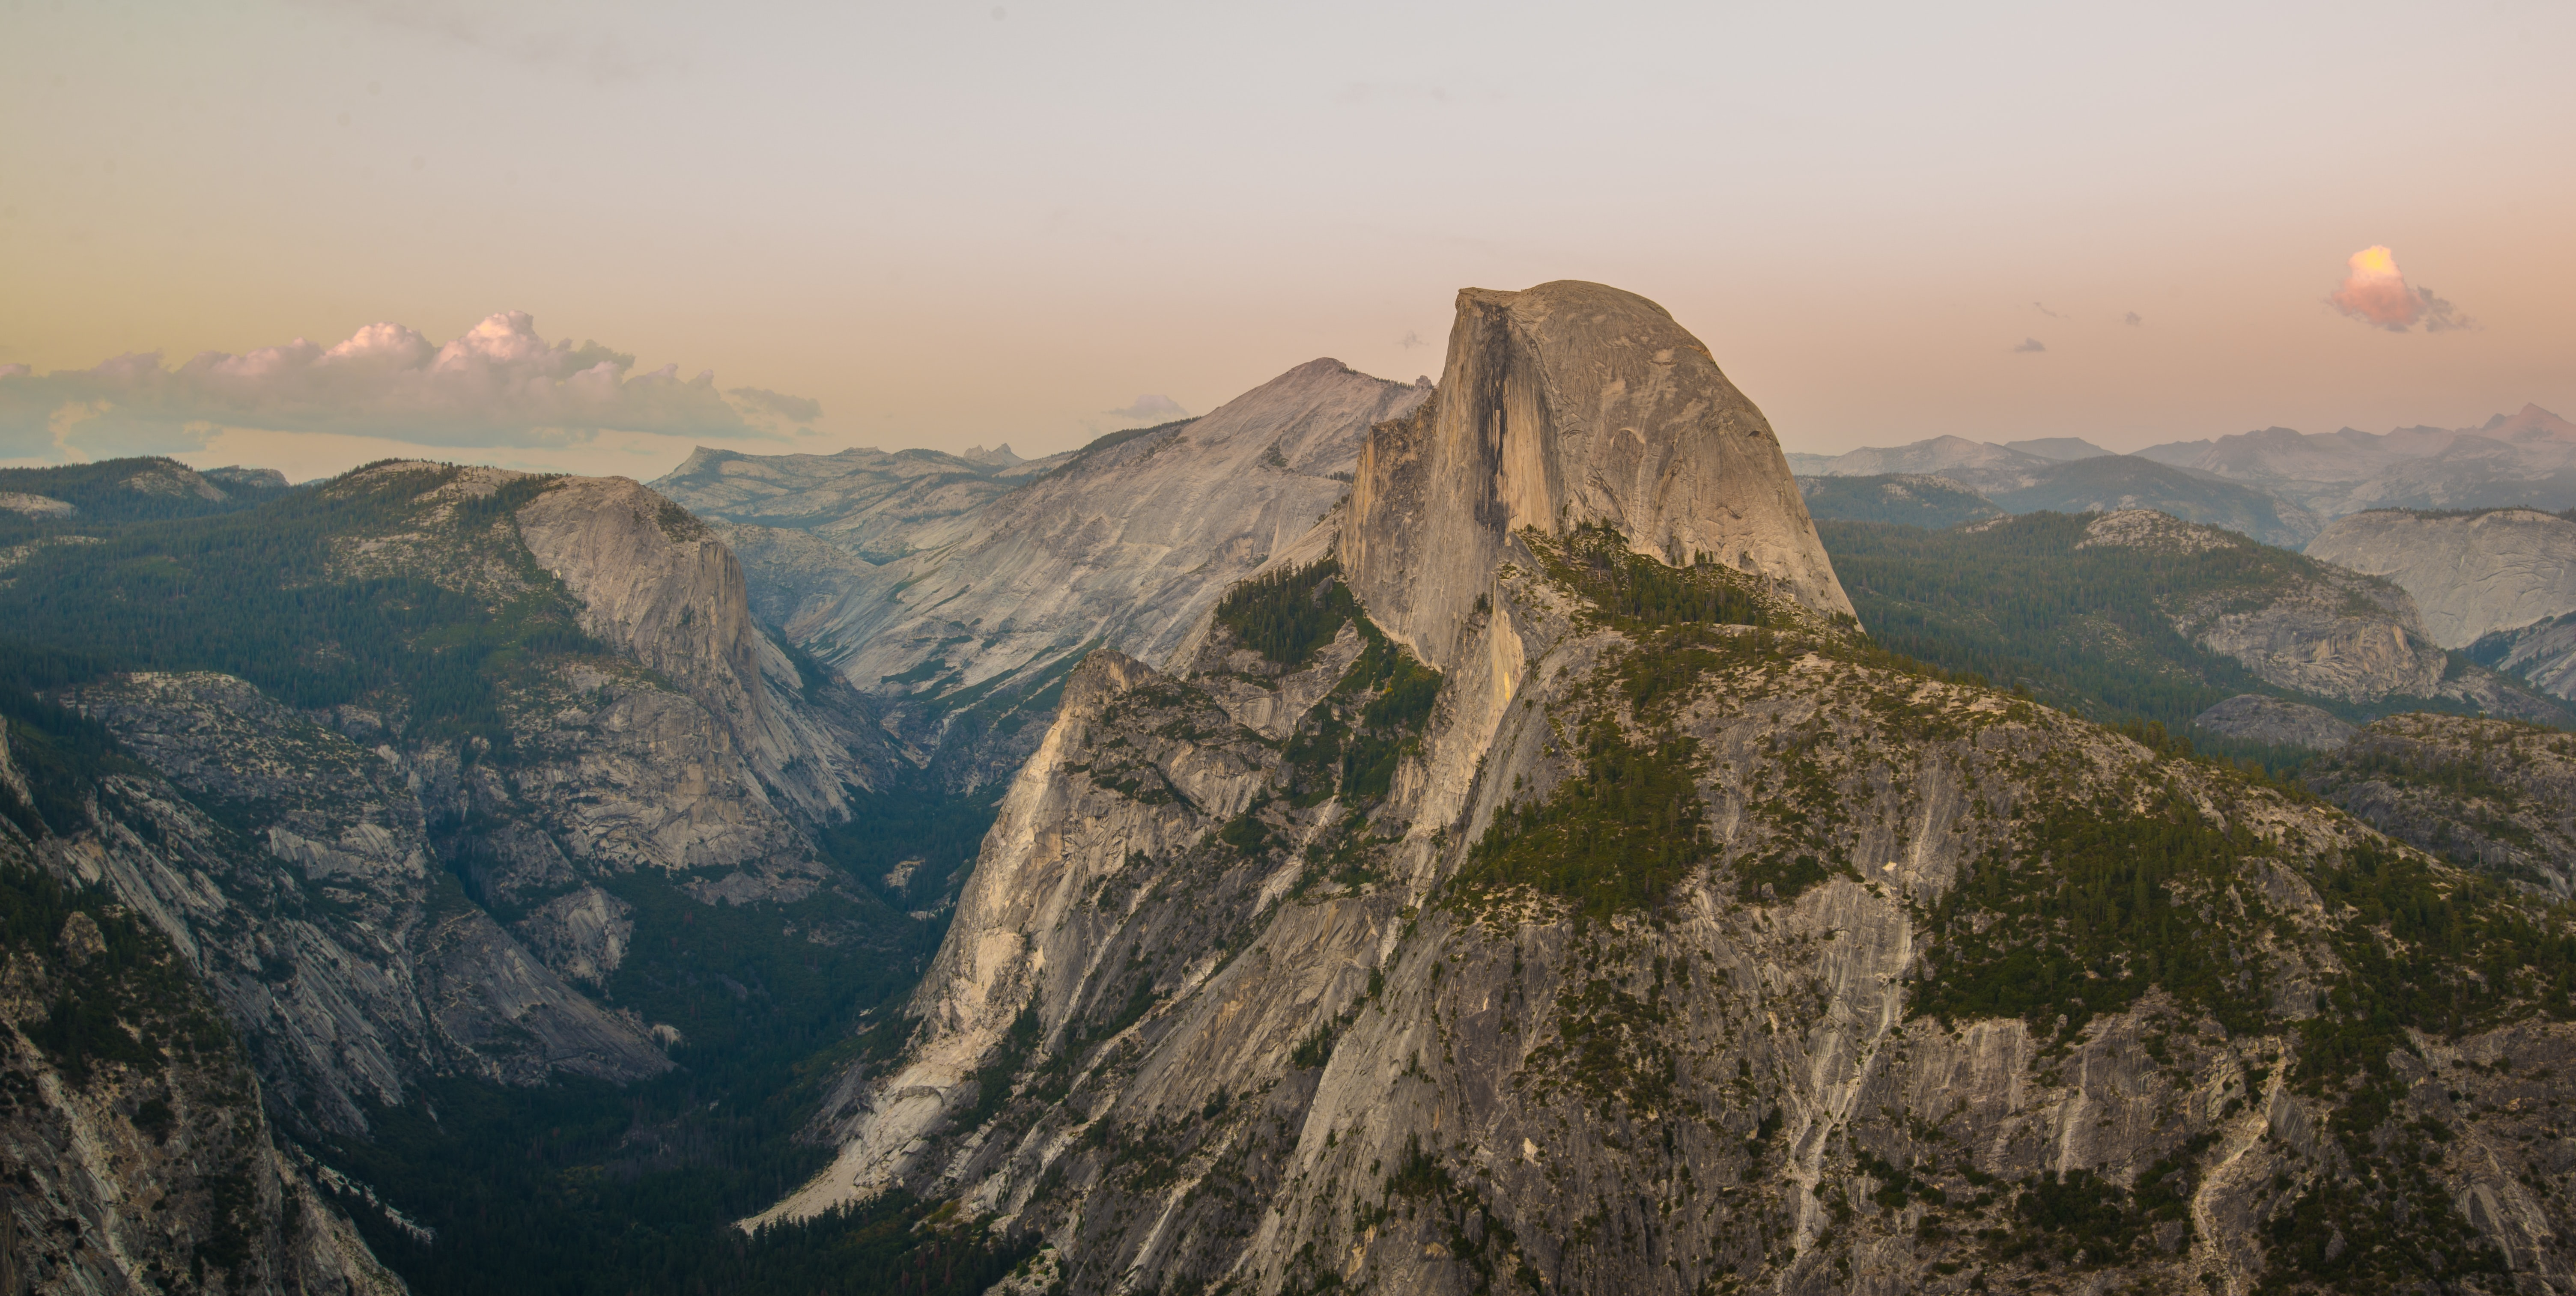 A high landscape view of the Yosemite Valley on a sunny afternoon